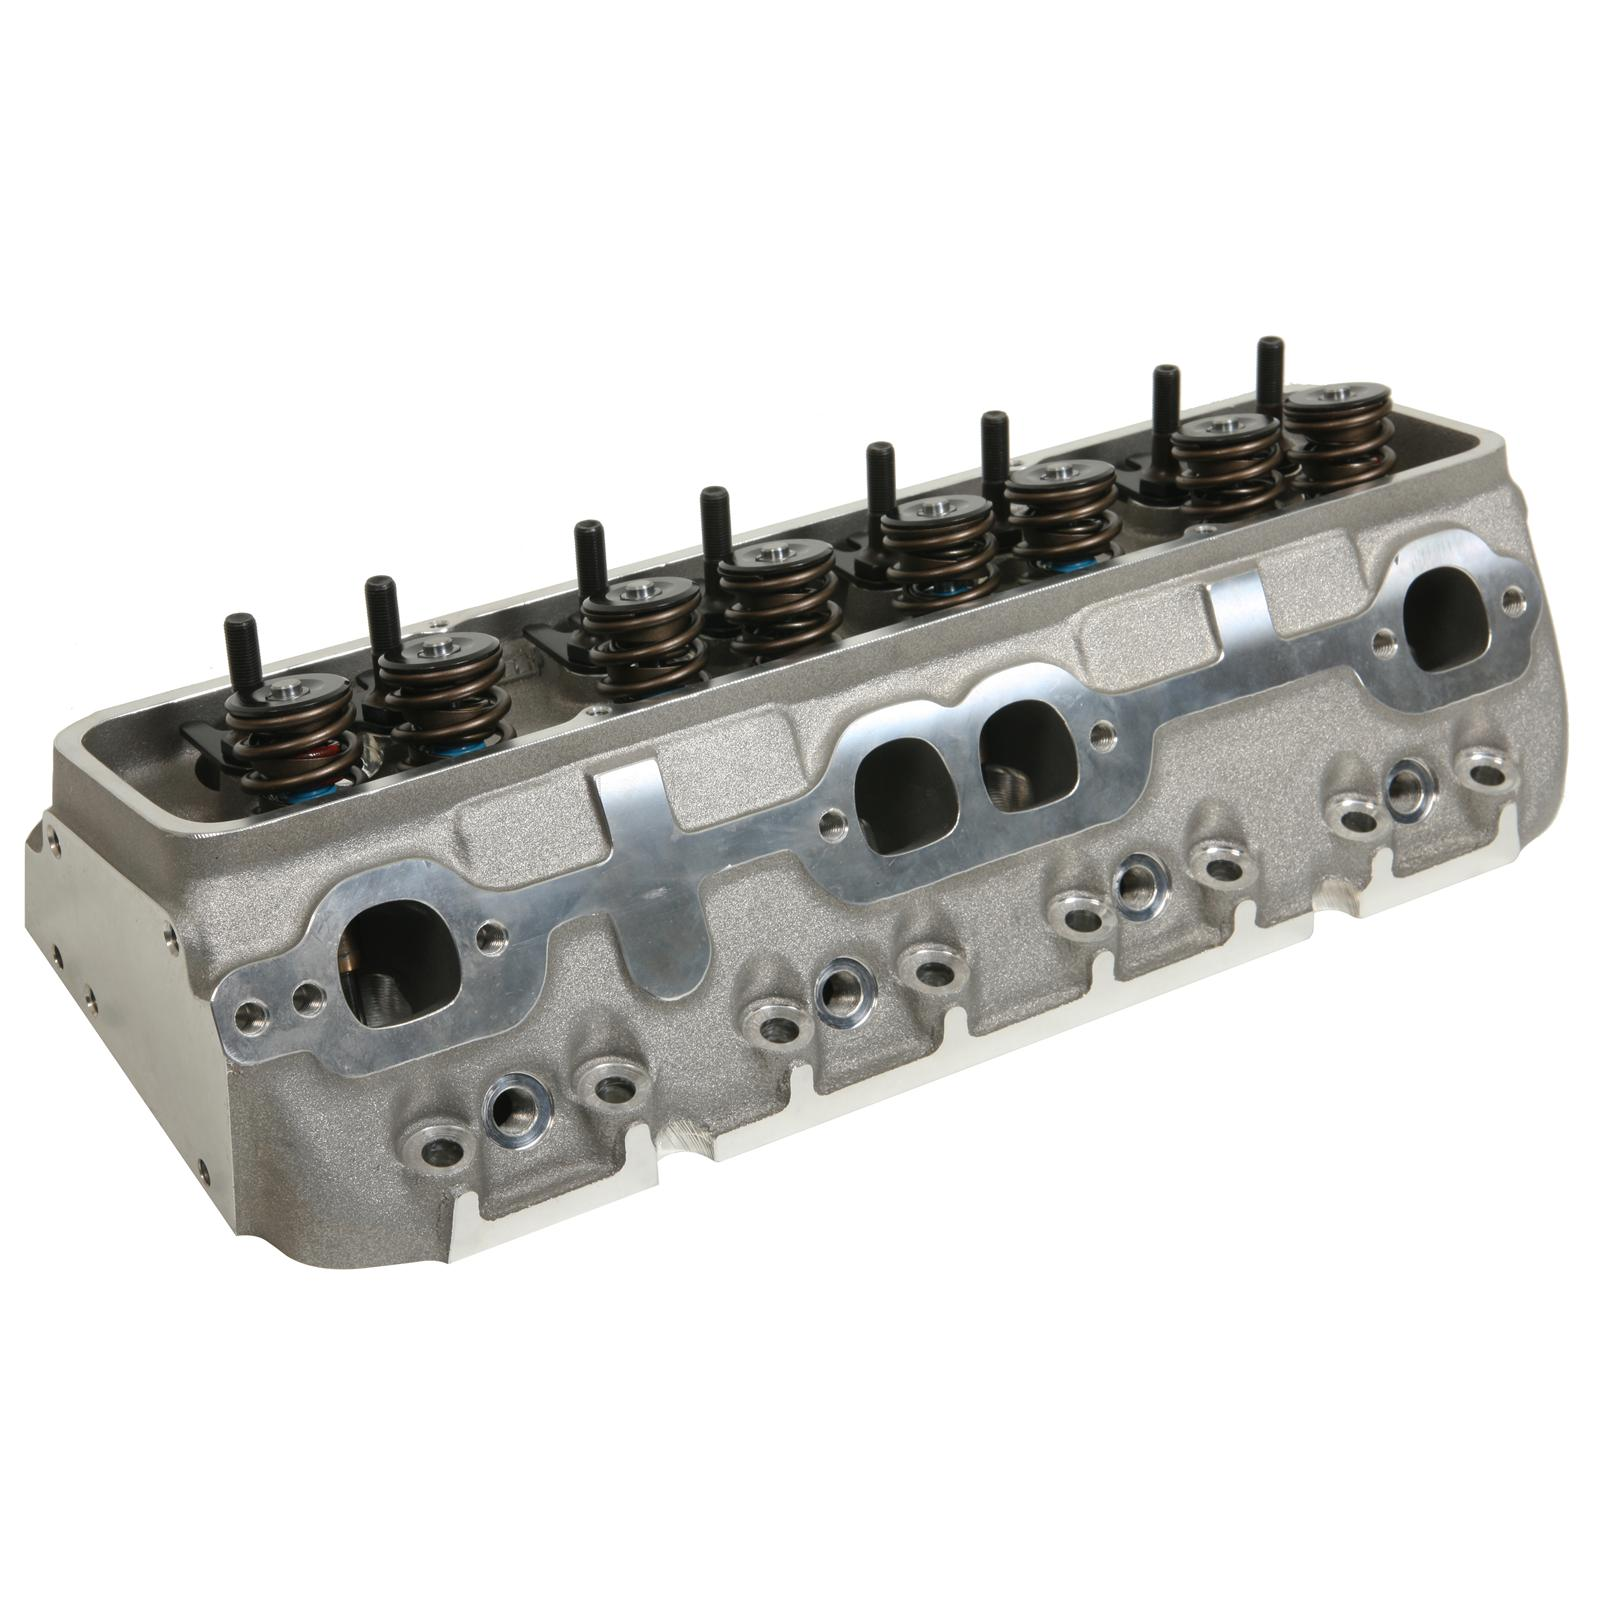 Summit Racing® 64cc Aluminum Cylinder Heads For Small